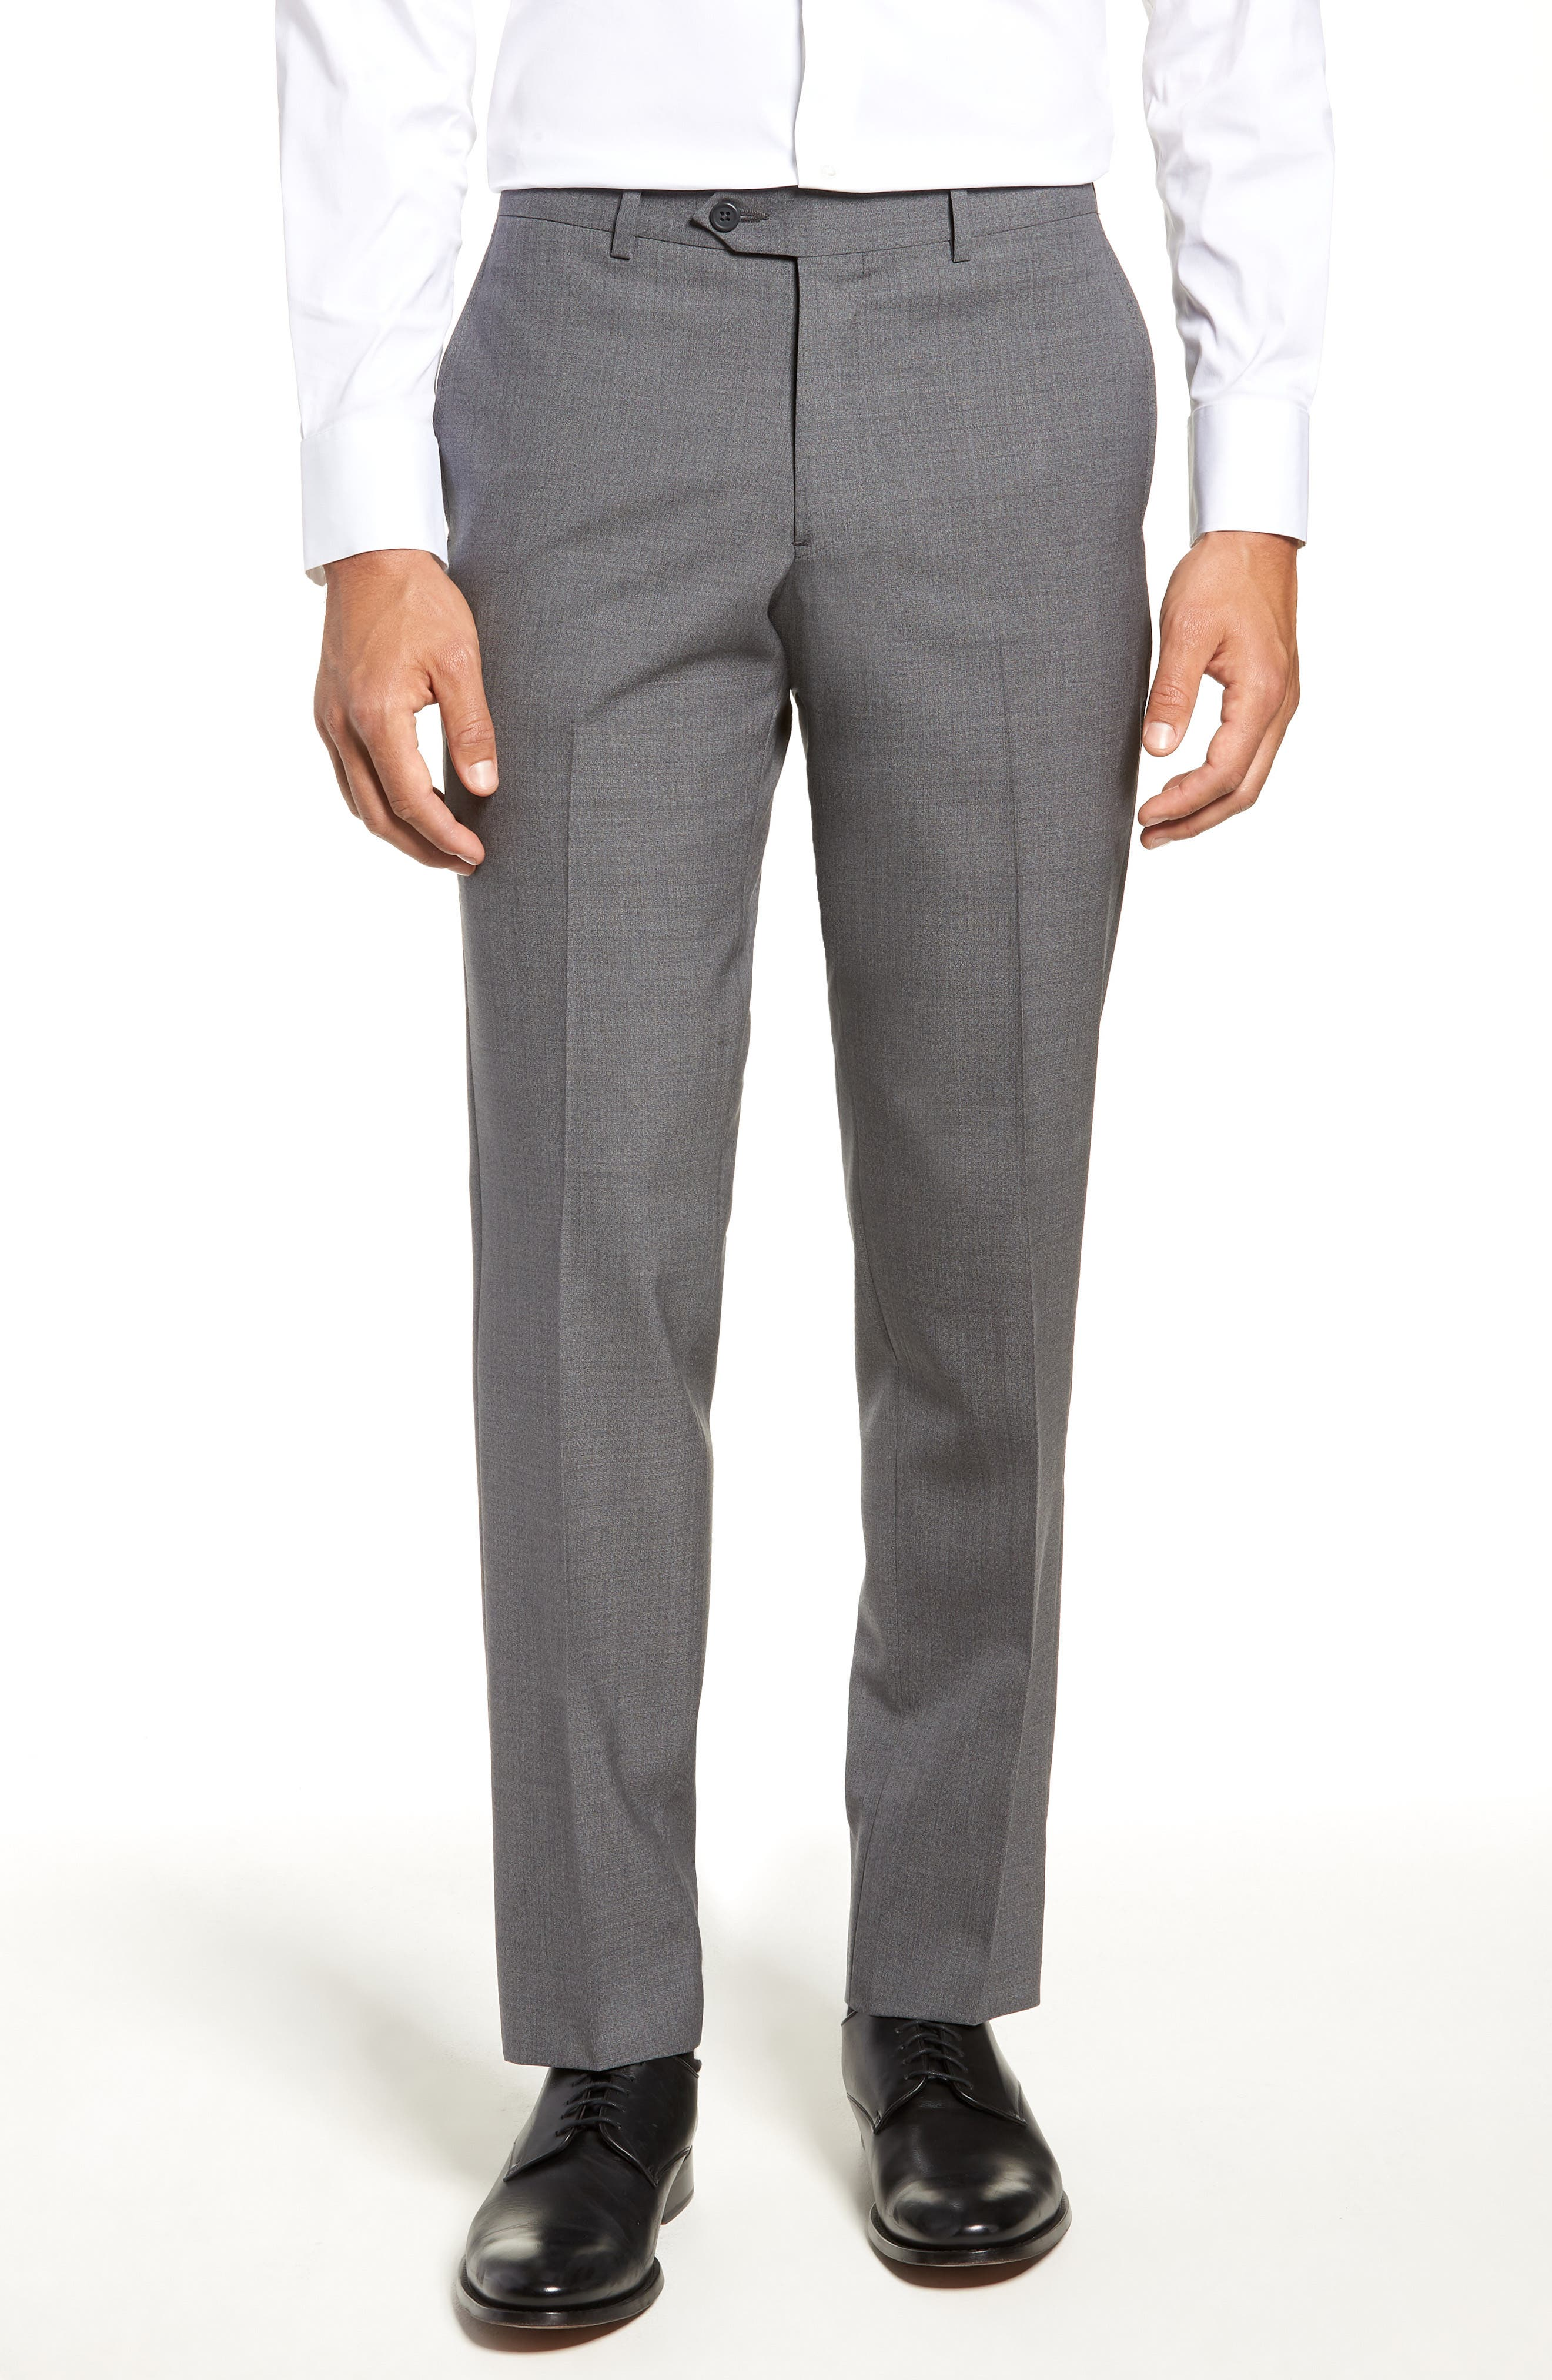 Trim Fit Flat Front Wool Trousers,                             Main thumbnail 1, color,                             GREY